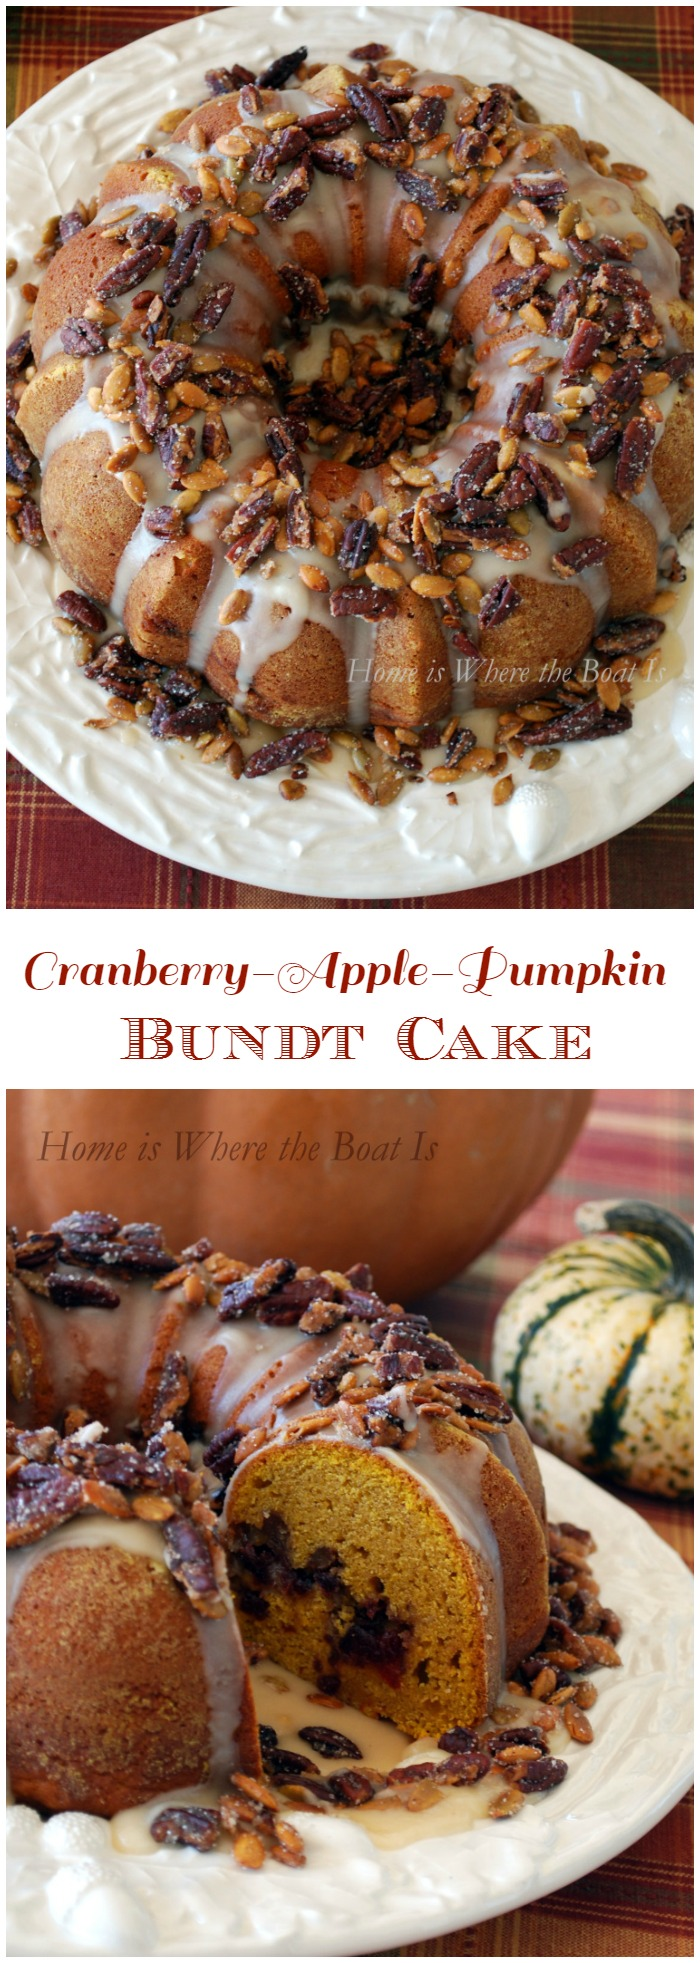 Cranberry-Apple-Pumpkin Bundt Cake! The flavors of fall in a cake with a Maple Glaze and Sugared Pecans and Pepitas.